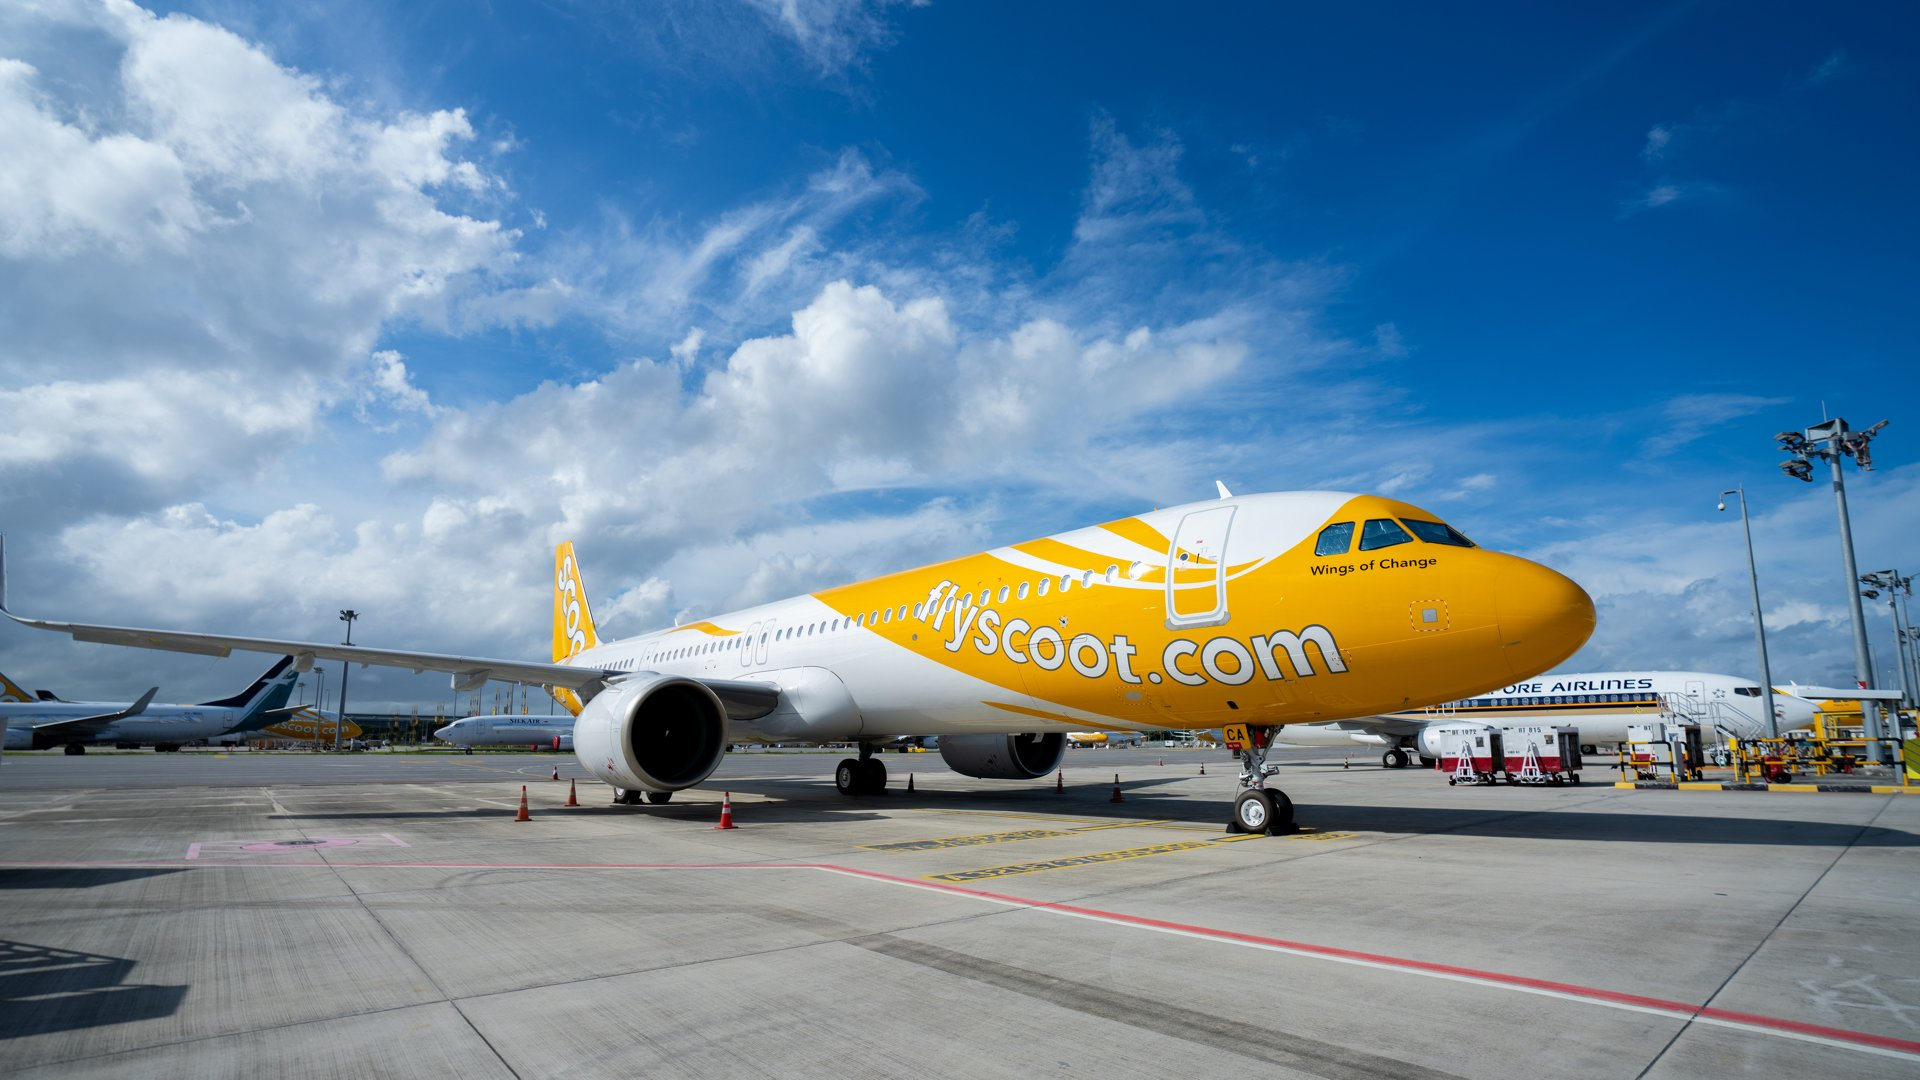 Scoot's first A321neo at Singapore Changi Airport